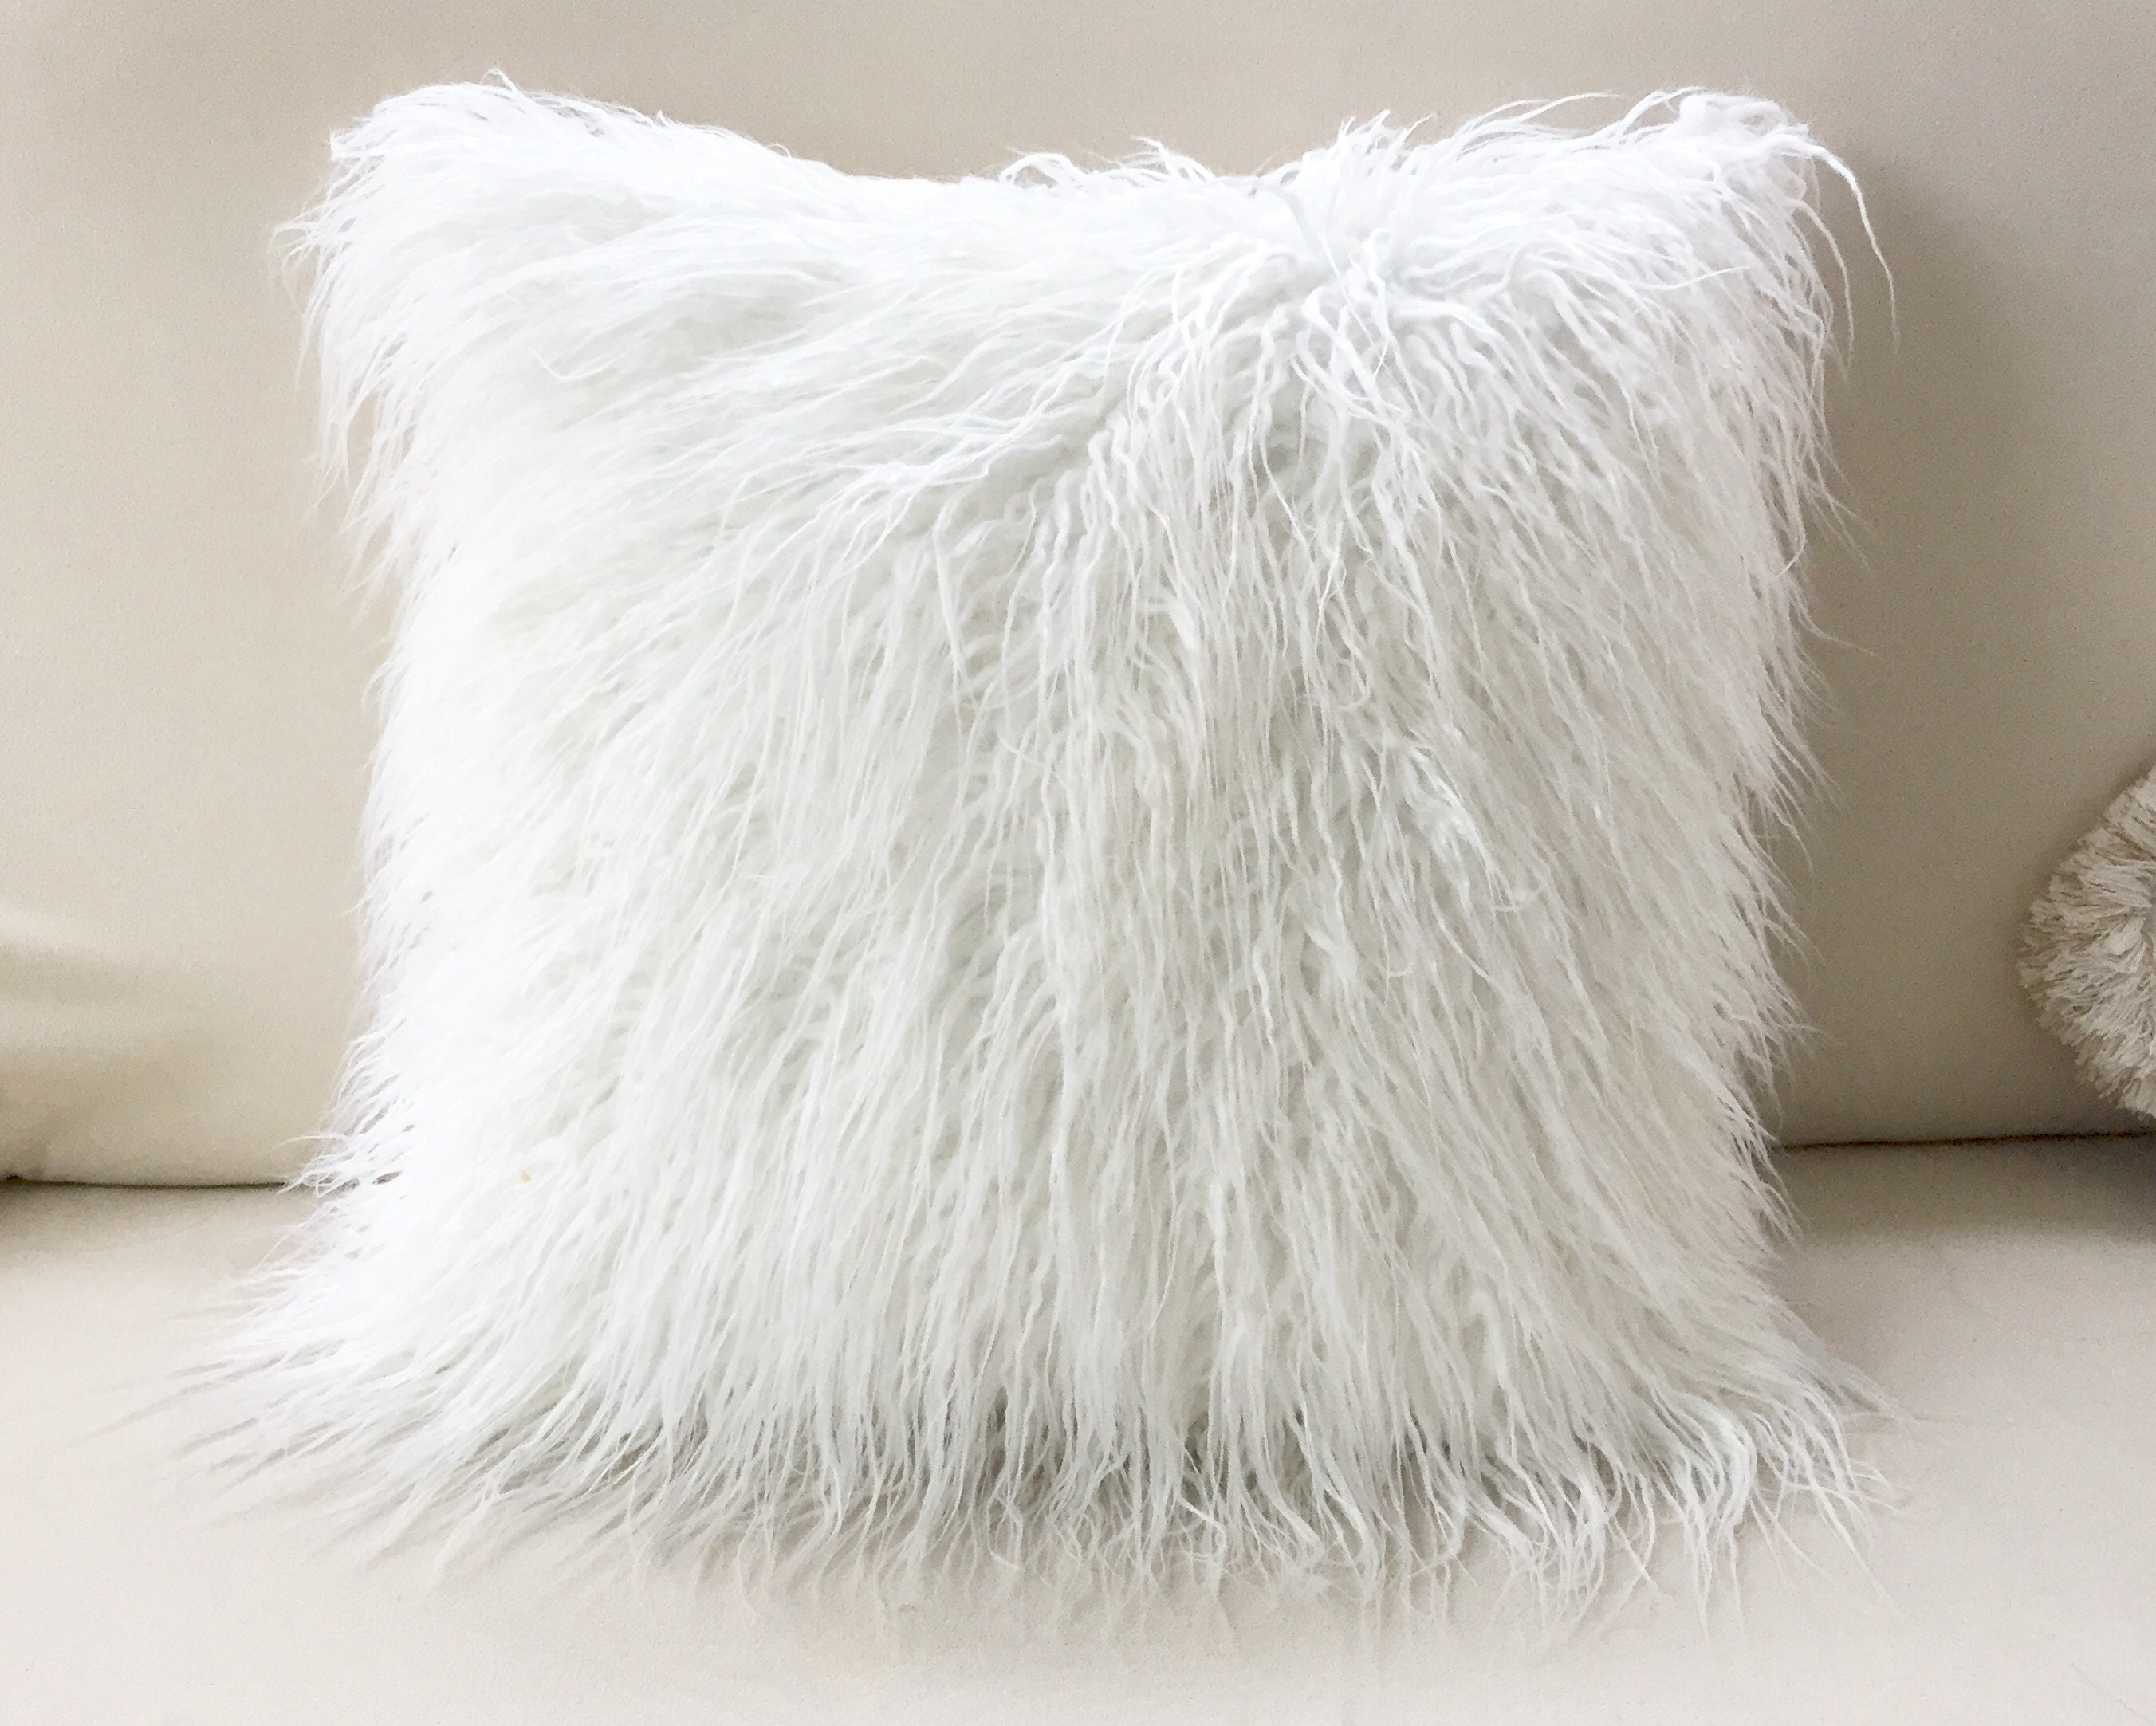 Luxury White Faux Fur Pillow Decorative Pillow Throw Pillow 18x18 20x20 12x20 24x24 Case Cushion Cover For Sofa 45 X 45 Cm